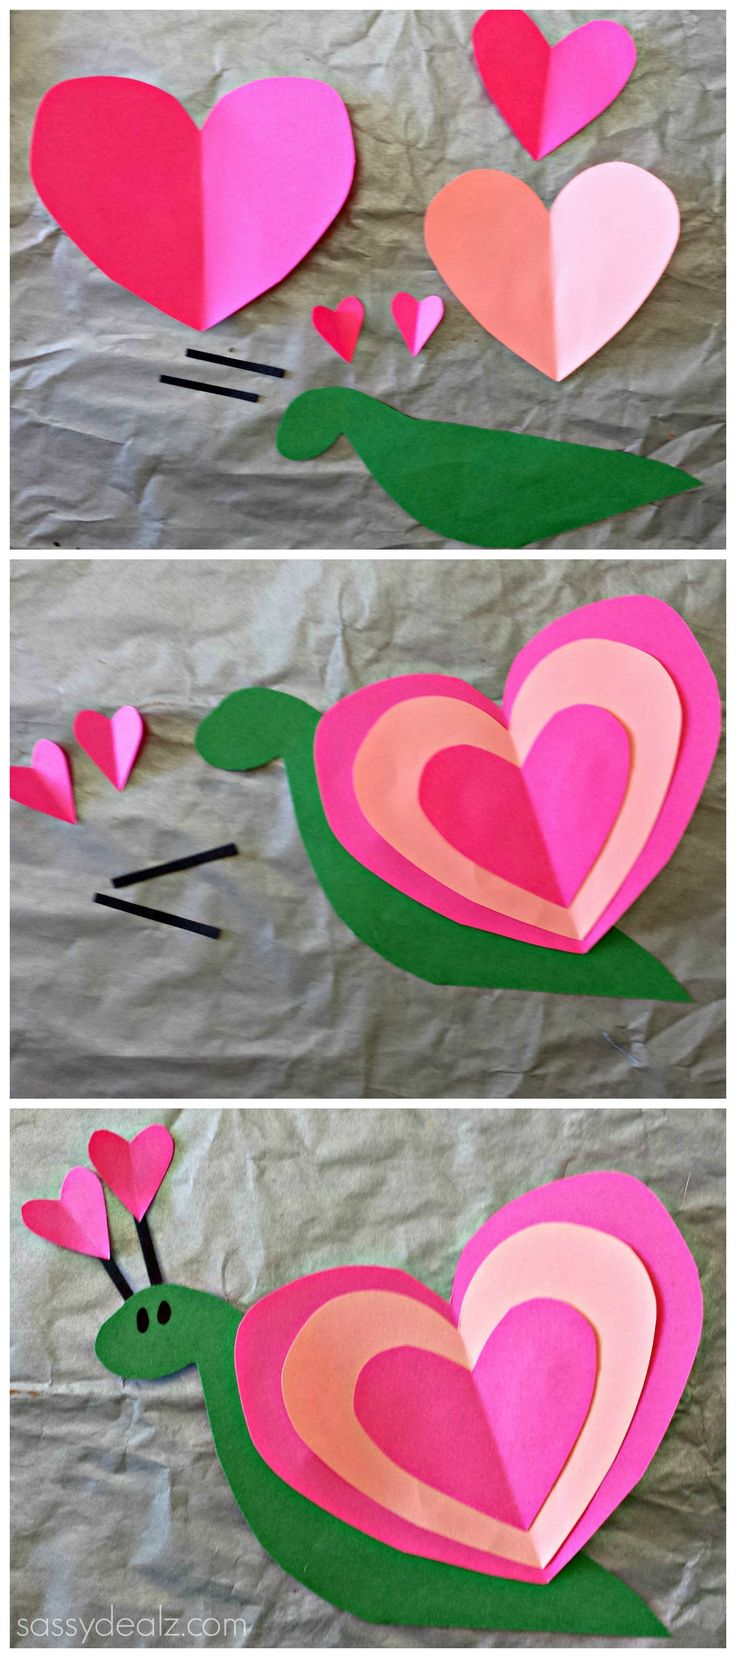 Heart Snail Craft For Kids (Valentine Art Project) #Heart shaped animal #DIY #Kids valentine | CraftyMorning.com